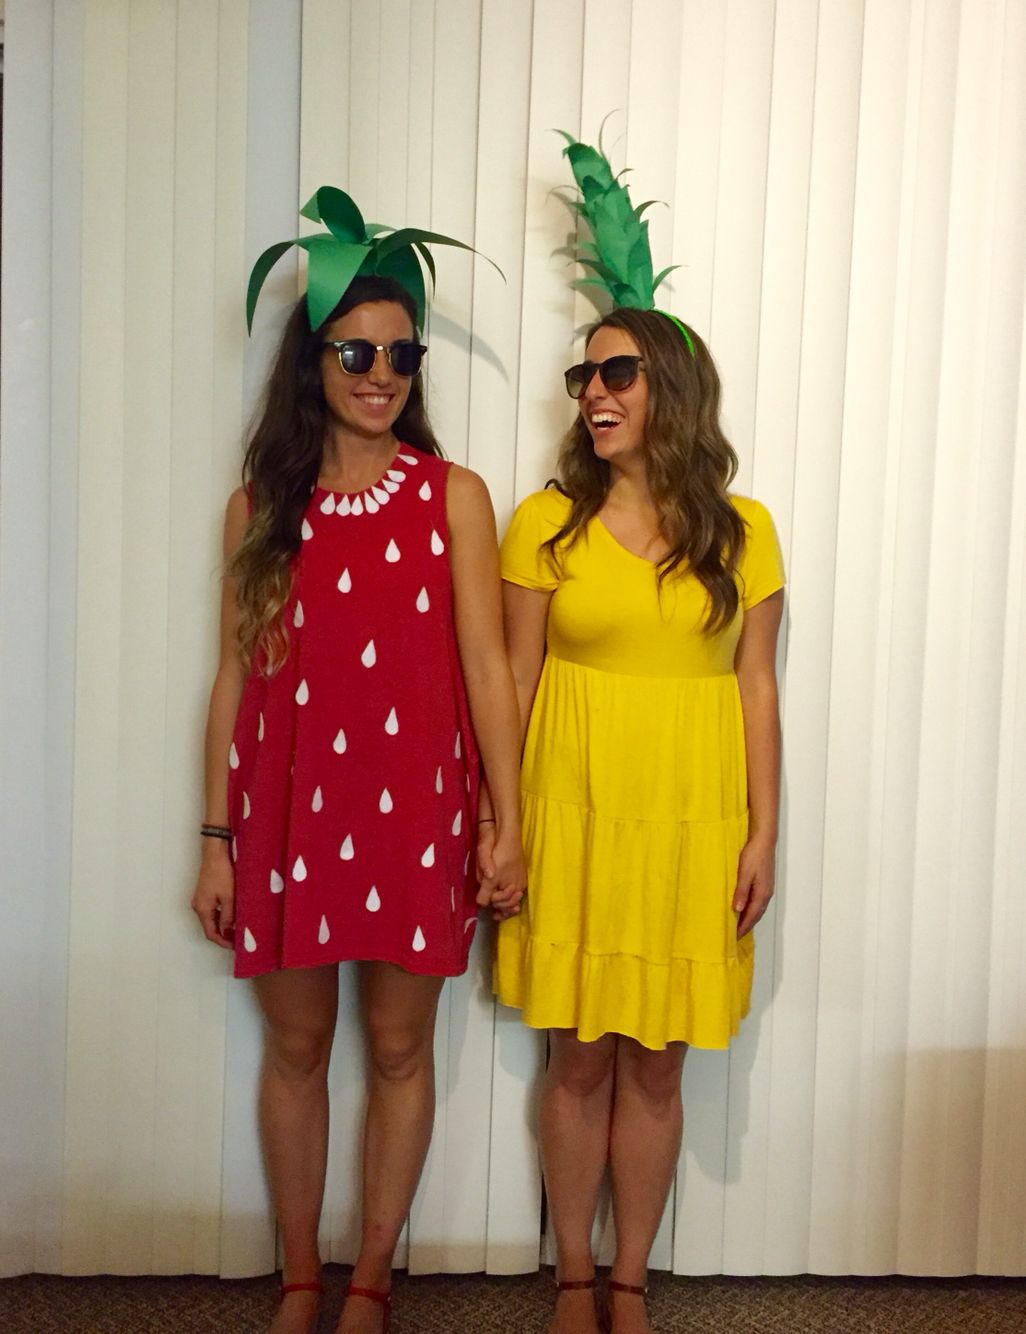 Strawberry and Pineapple Halloween costume Sister